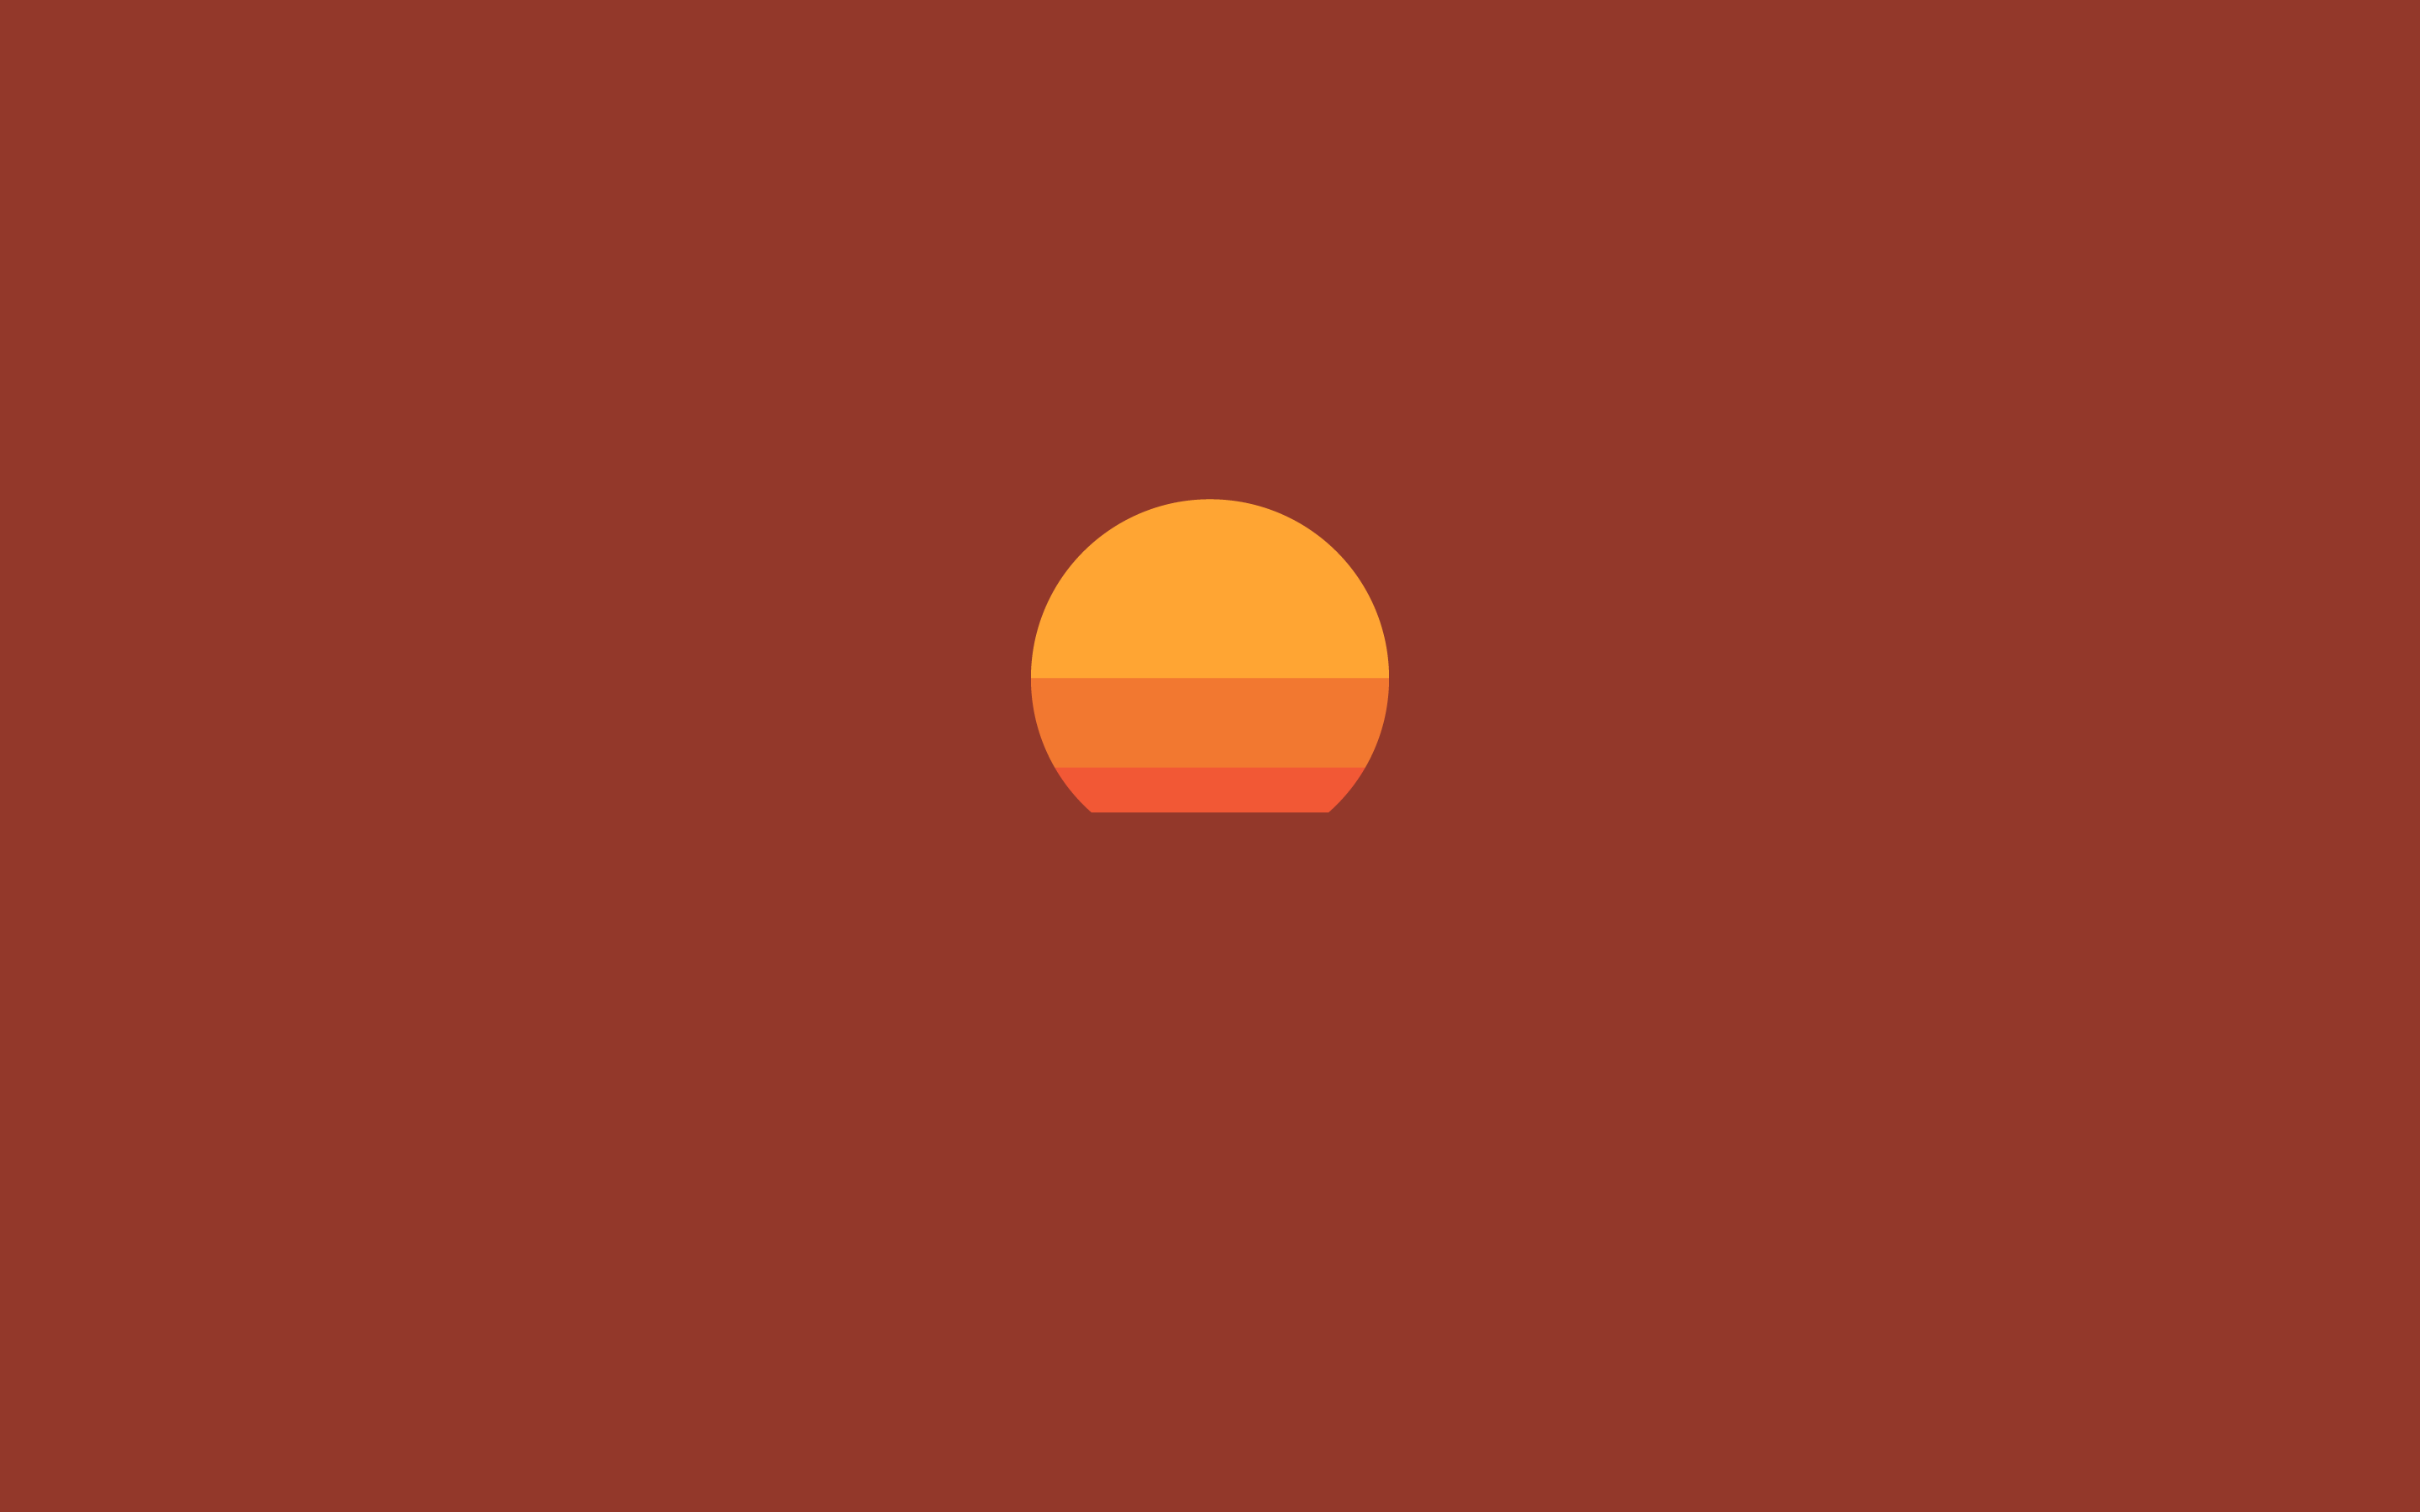 Minimalist Sunset Wallpaper 2880x1800 Oc In 2020 Minimalist Desktop Wallpaper Desktop Wallpaper Art Cute Desktop Wallpaper